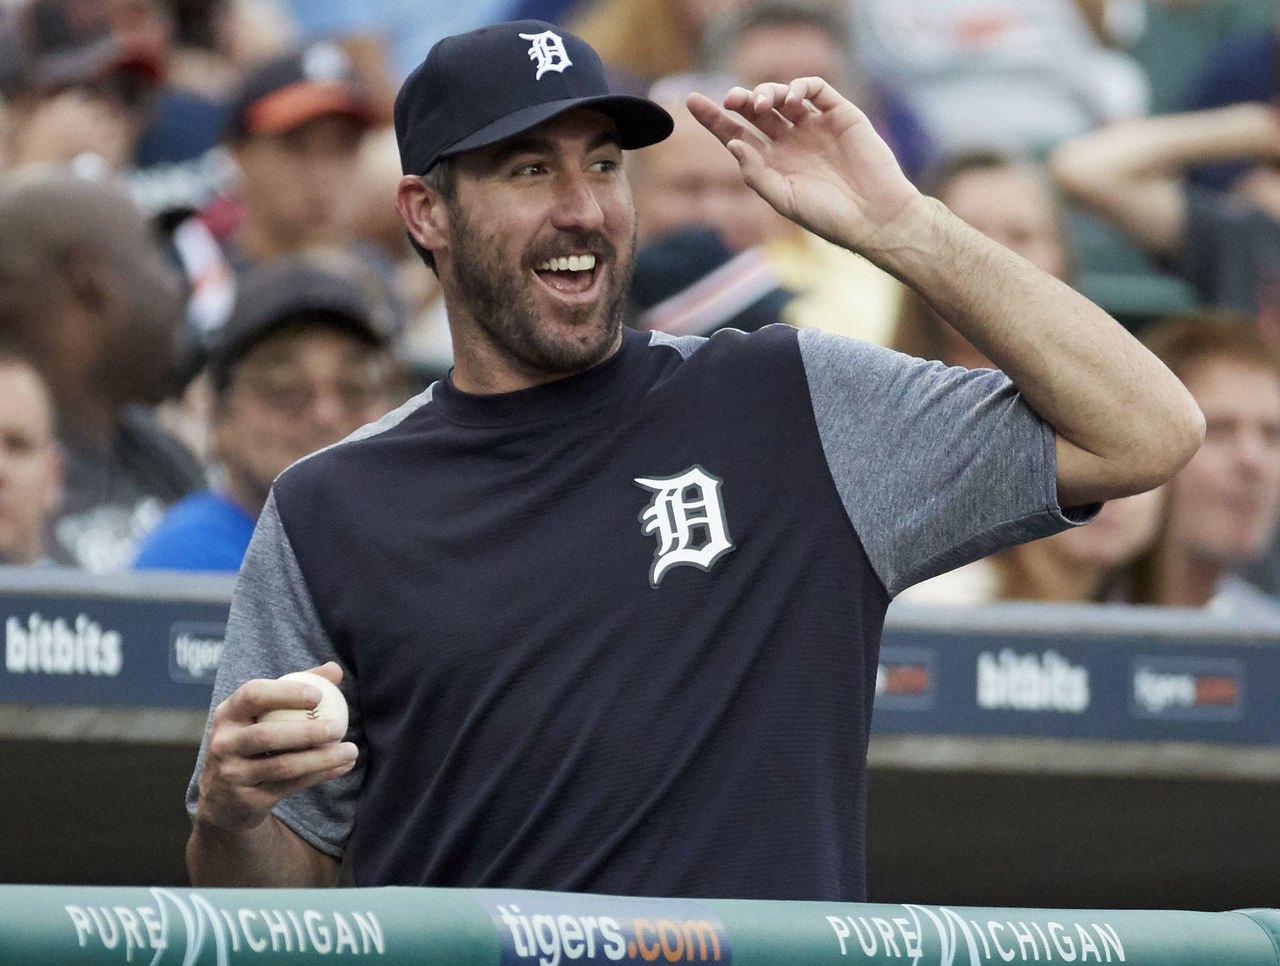 Cropped_2017-06-17t025836z_169933069_nocid_rtrmadp_3_mlb-tampa-bay-rays-at-detroit-tigers